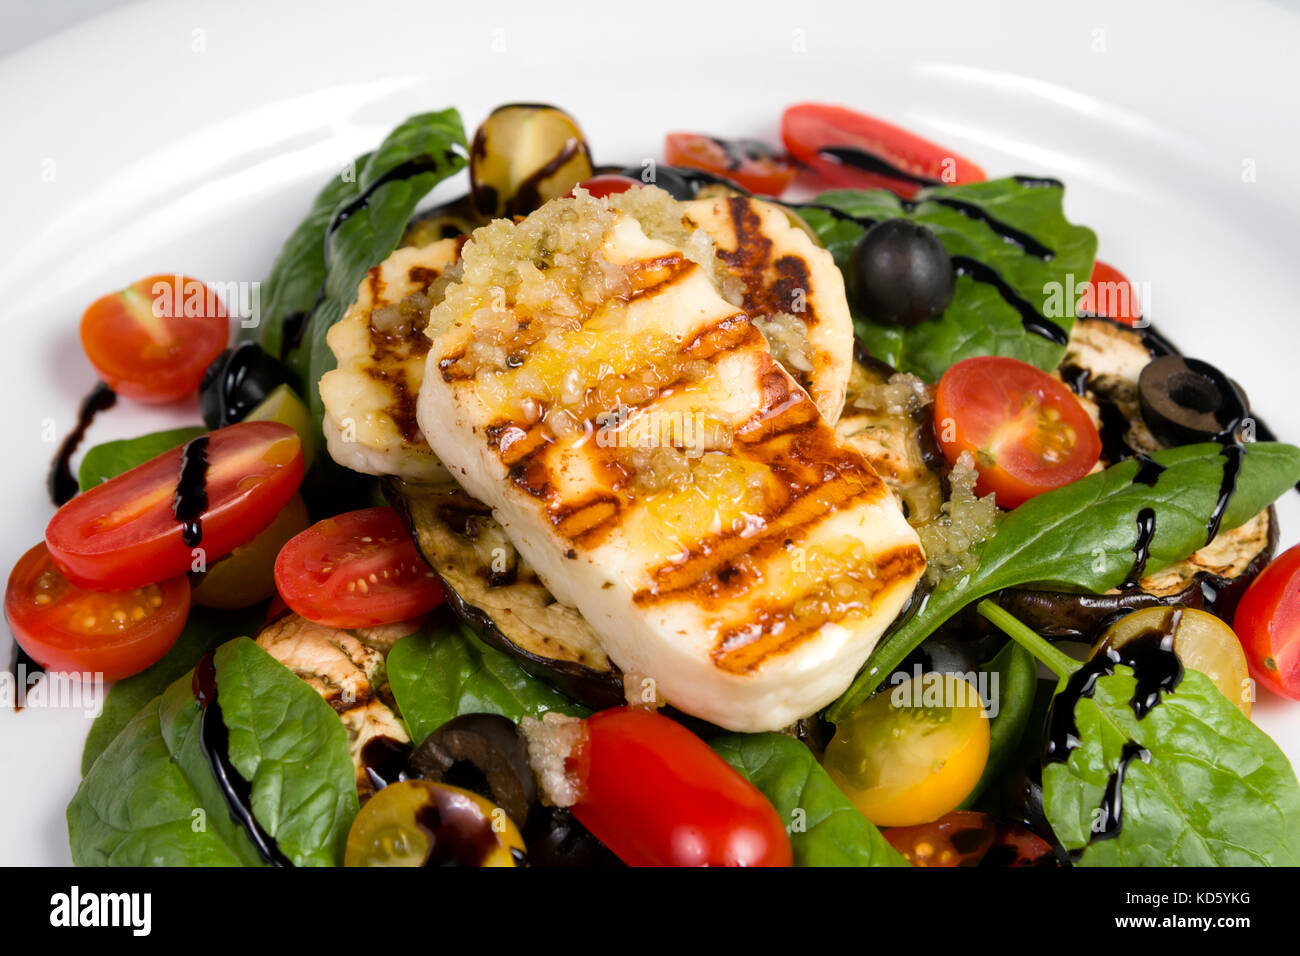 Grilled Halloumi Cheese poured with garlic olive oil salad witch grilled eggplant, cherry tomatoes, black olives Stock Photo